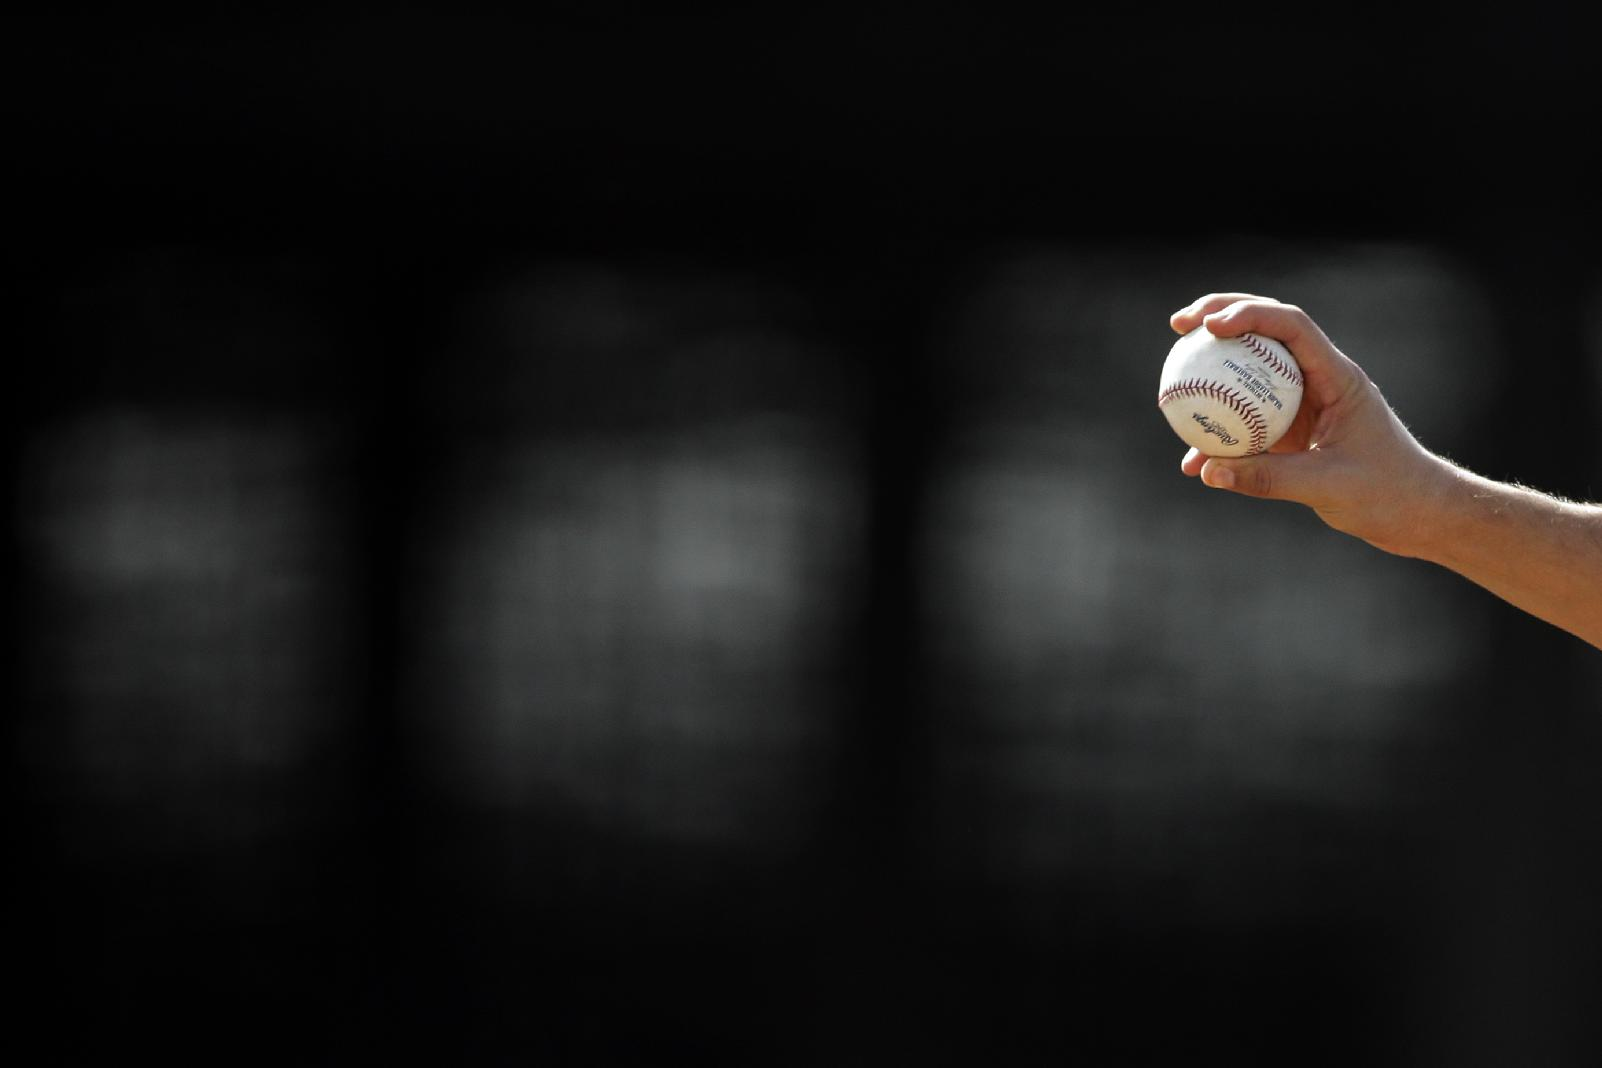 Colorado Rockies invitee pitcher Christian Bergman reaches back with the ball as he throws during baseball spring training, Friday, Feb. 21, 2014, in Scottsdale, Ariz